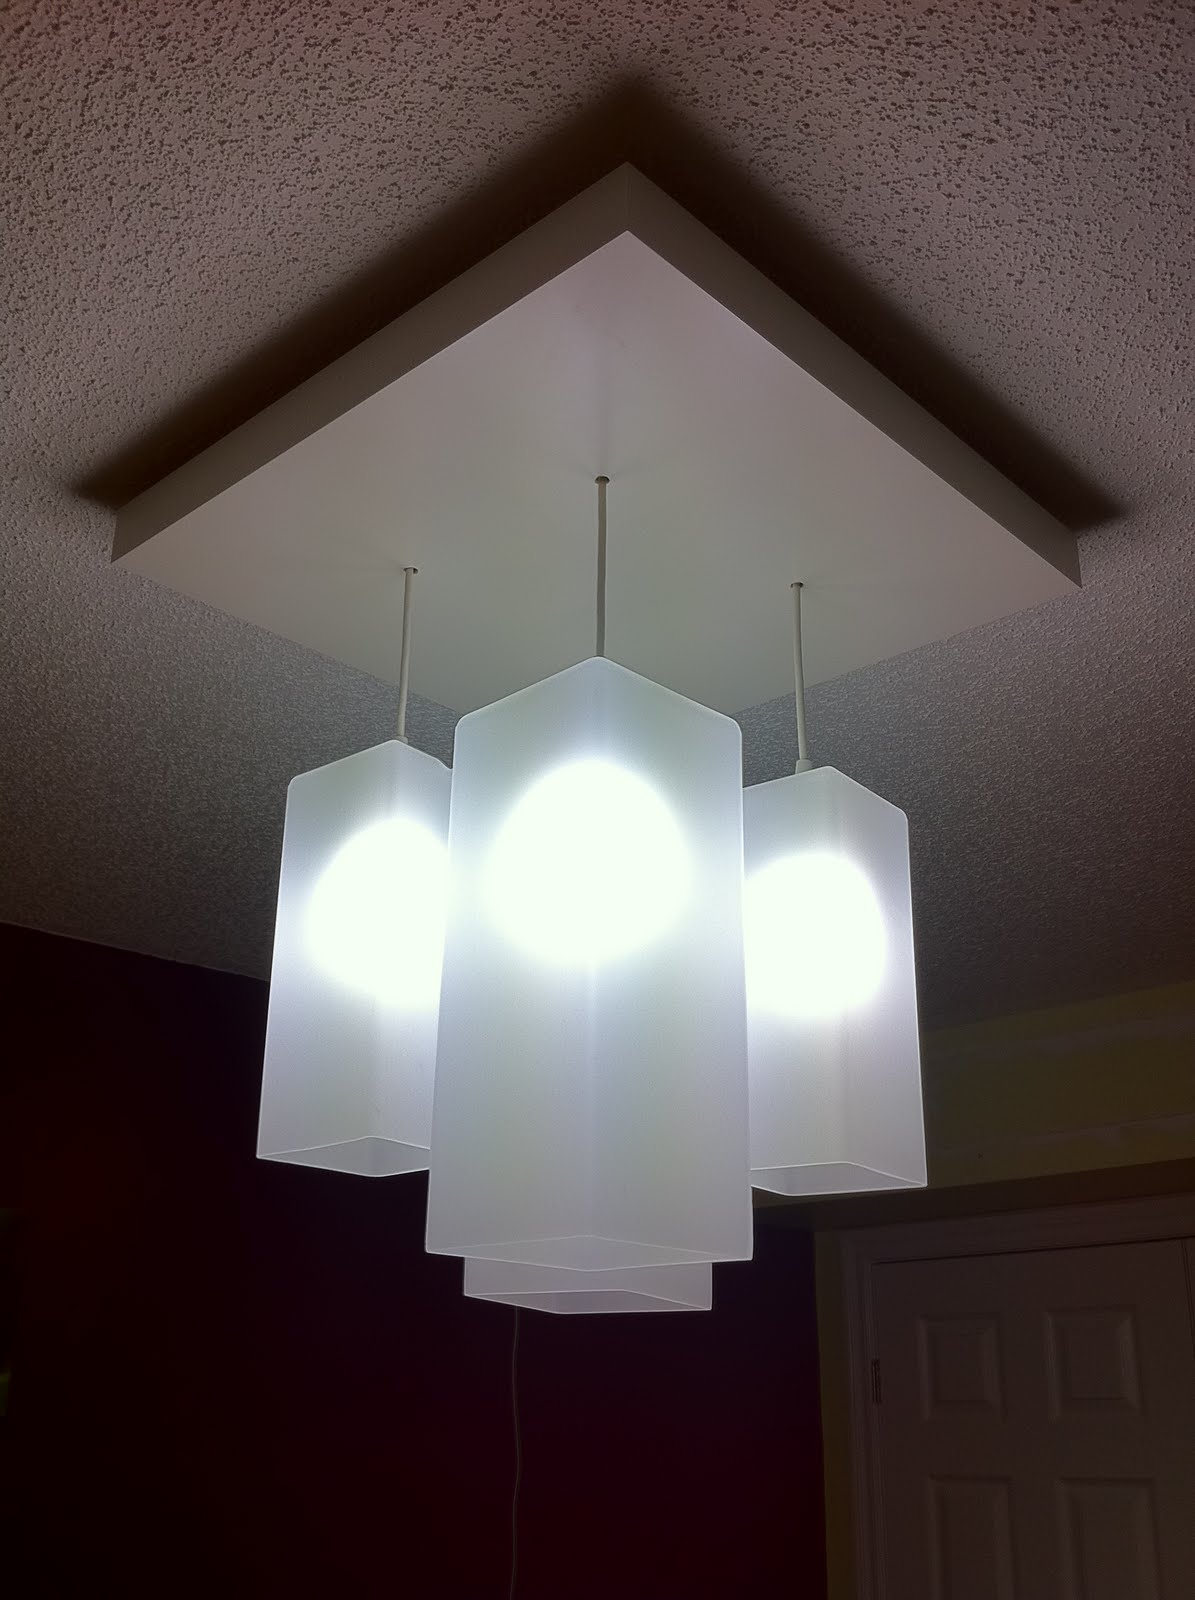 ceiling lighting without wiring ceiling designs rh bestprweb com install ceiling light without wiring install ceiling light without existing wiring